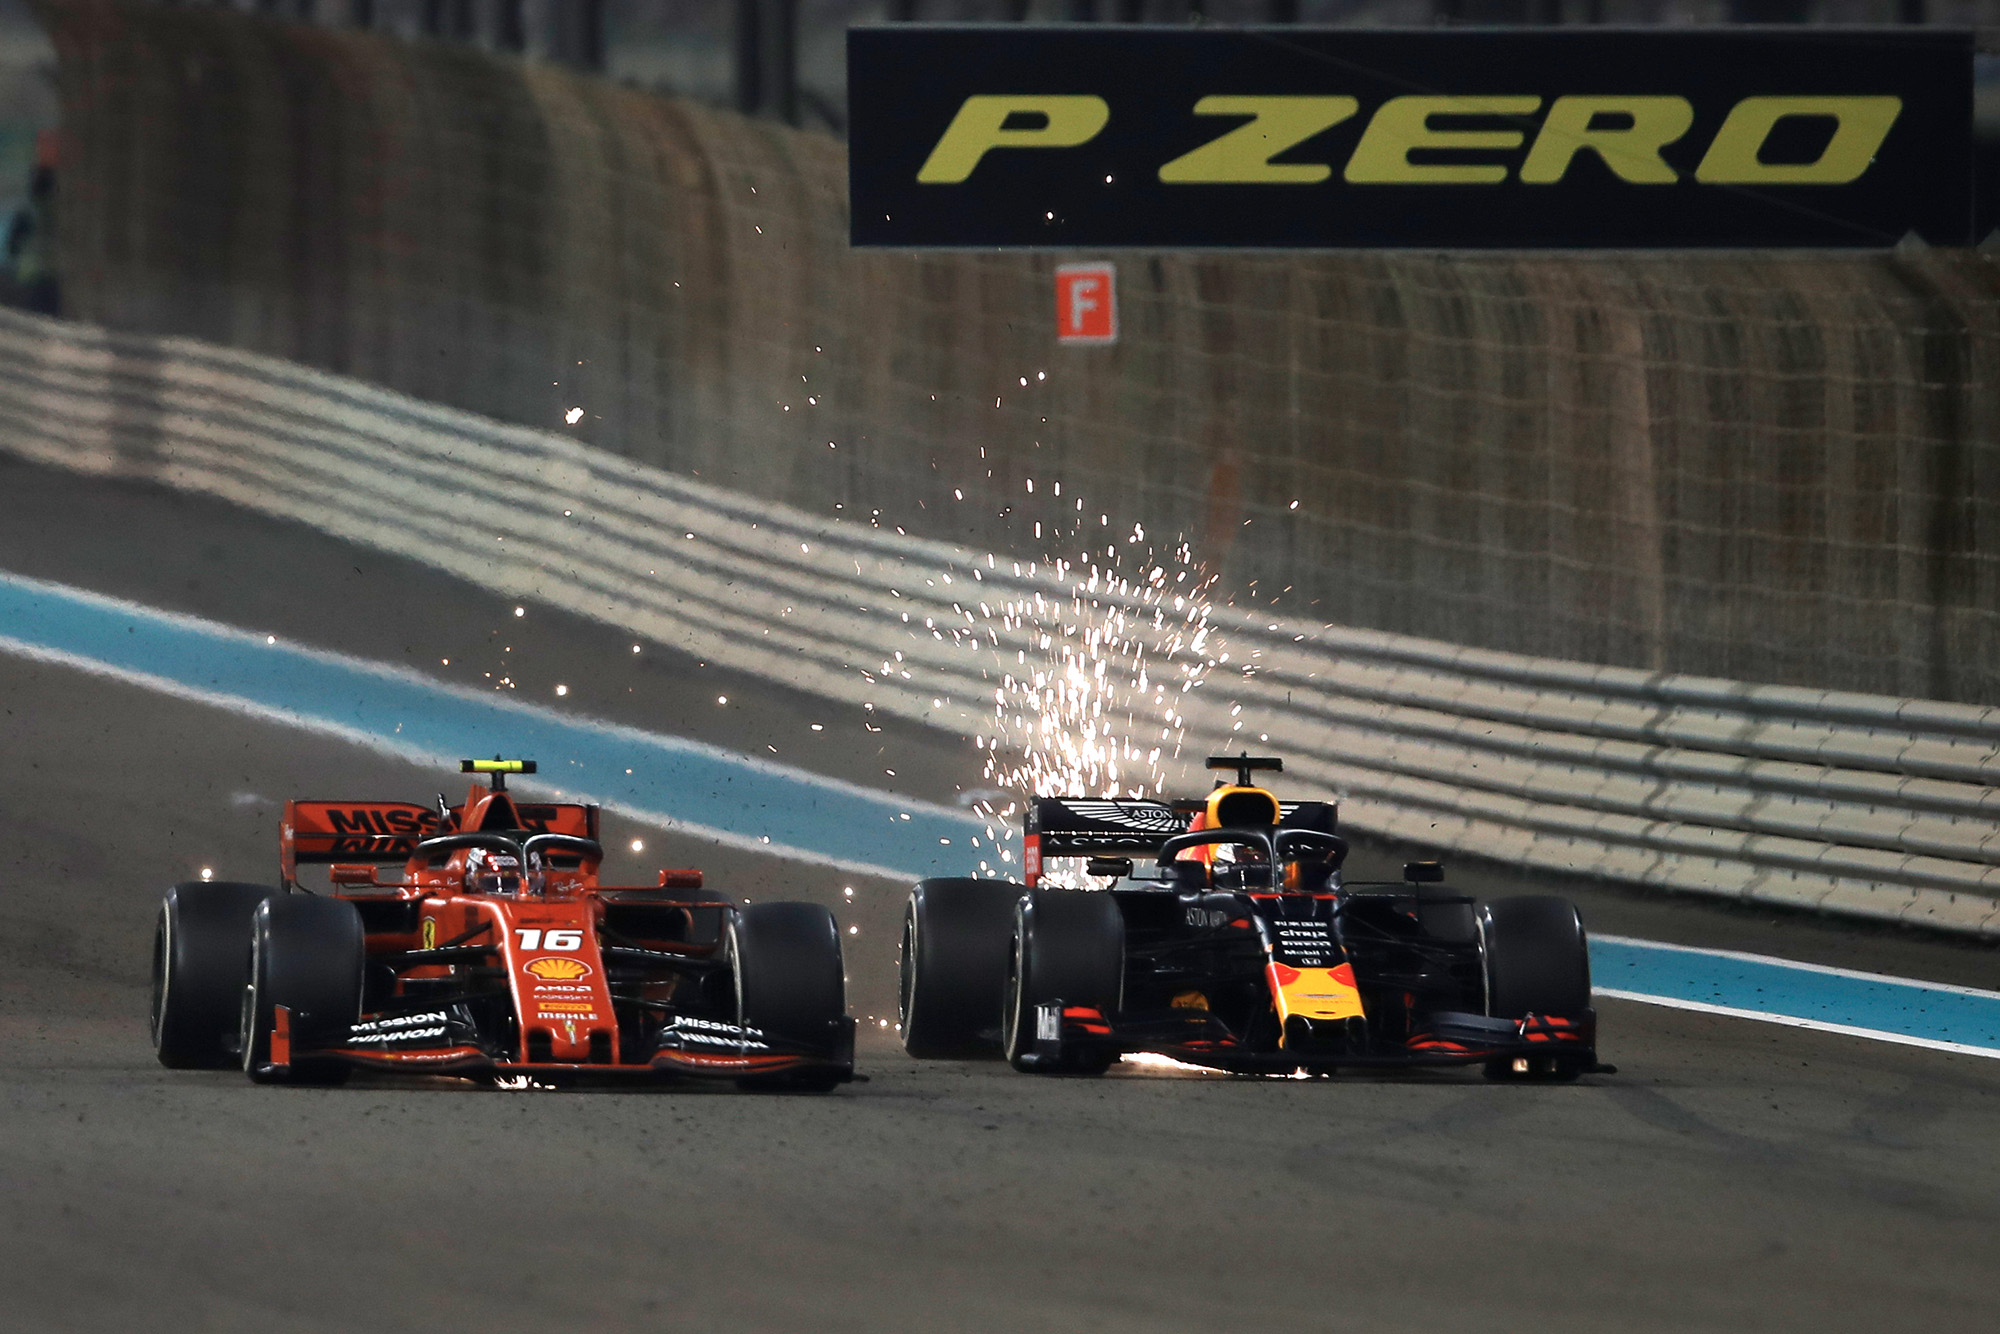 Max Verstappen overtakes Charles Leclerc at the 2019 F1 Abu Dhabi Grand Prix